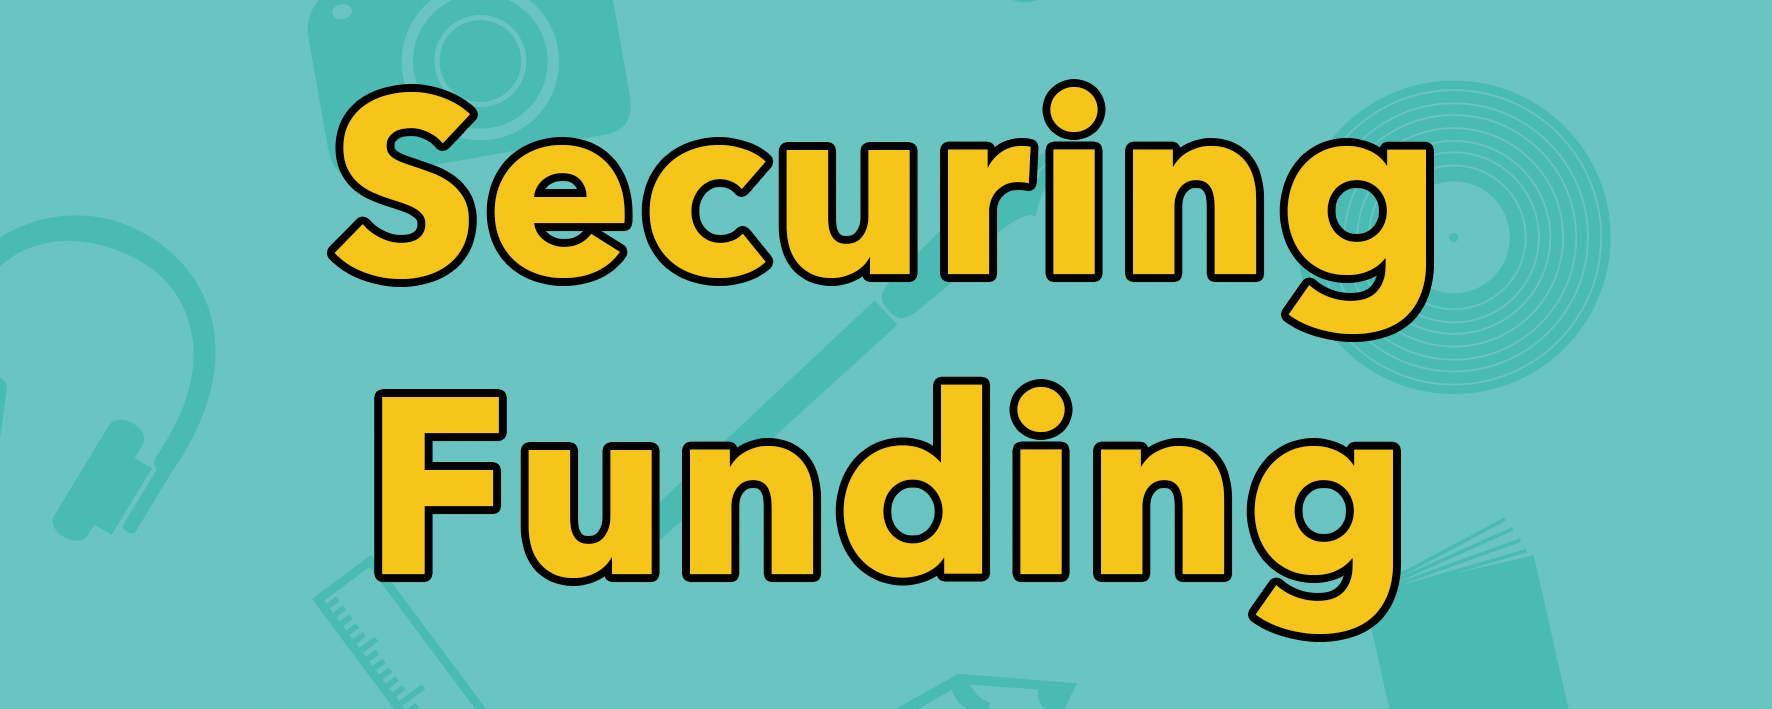 Securing Funding